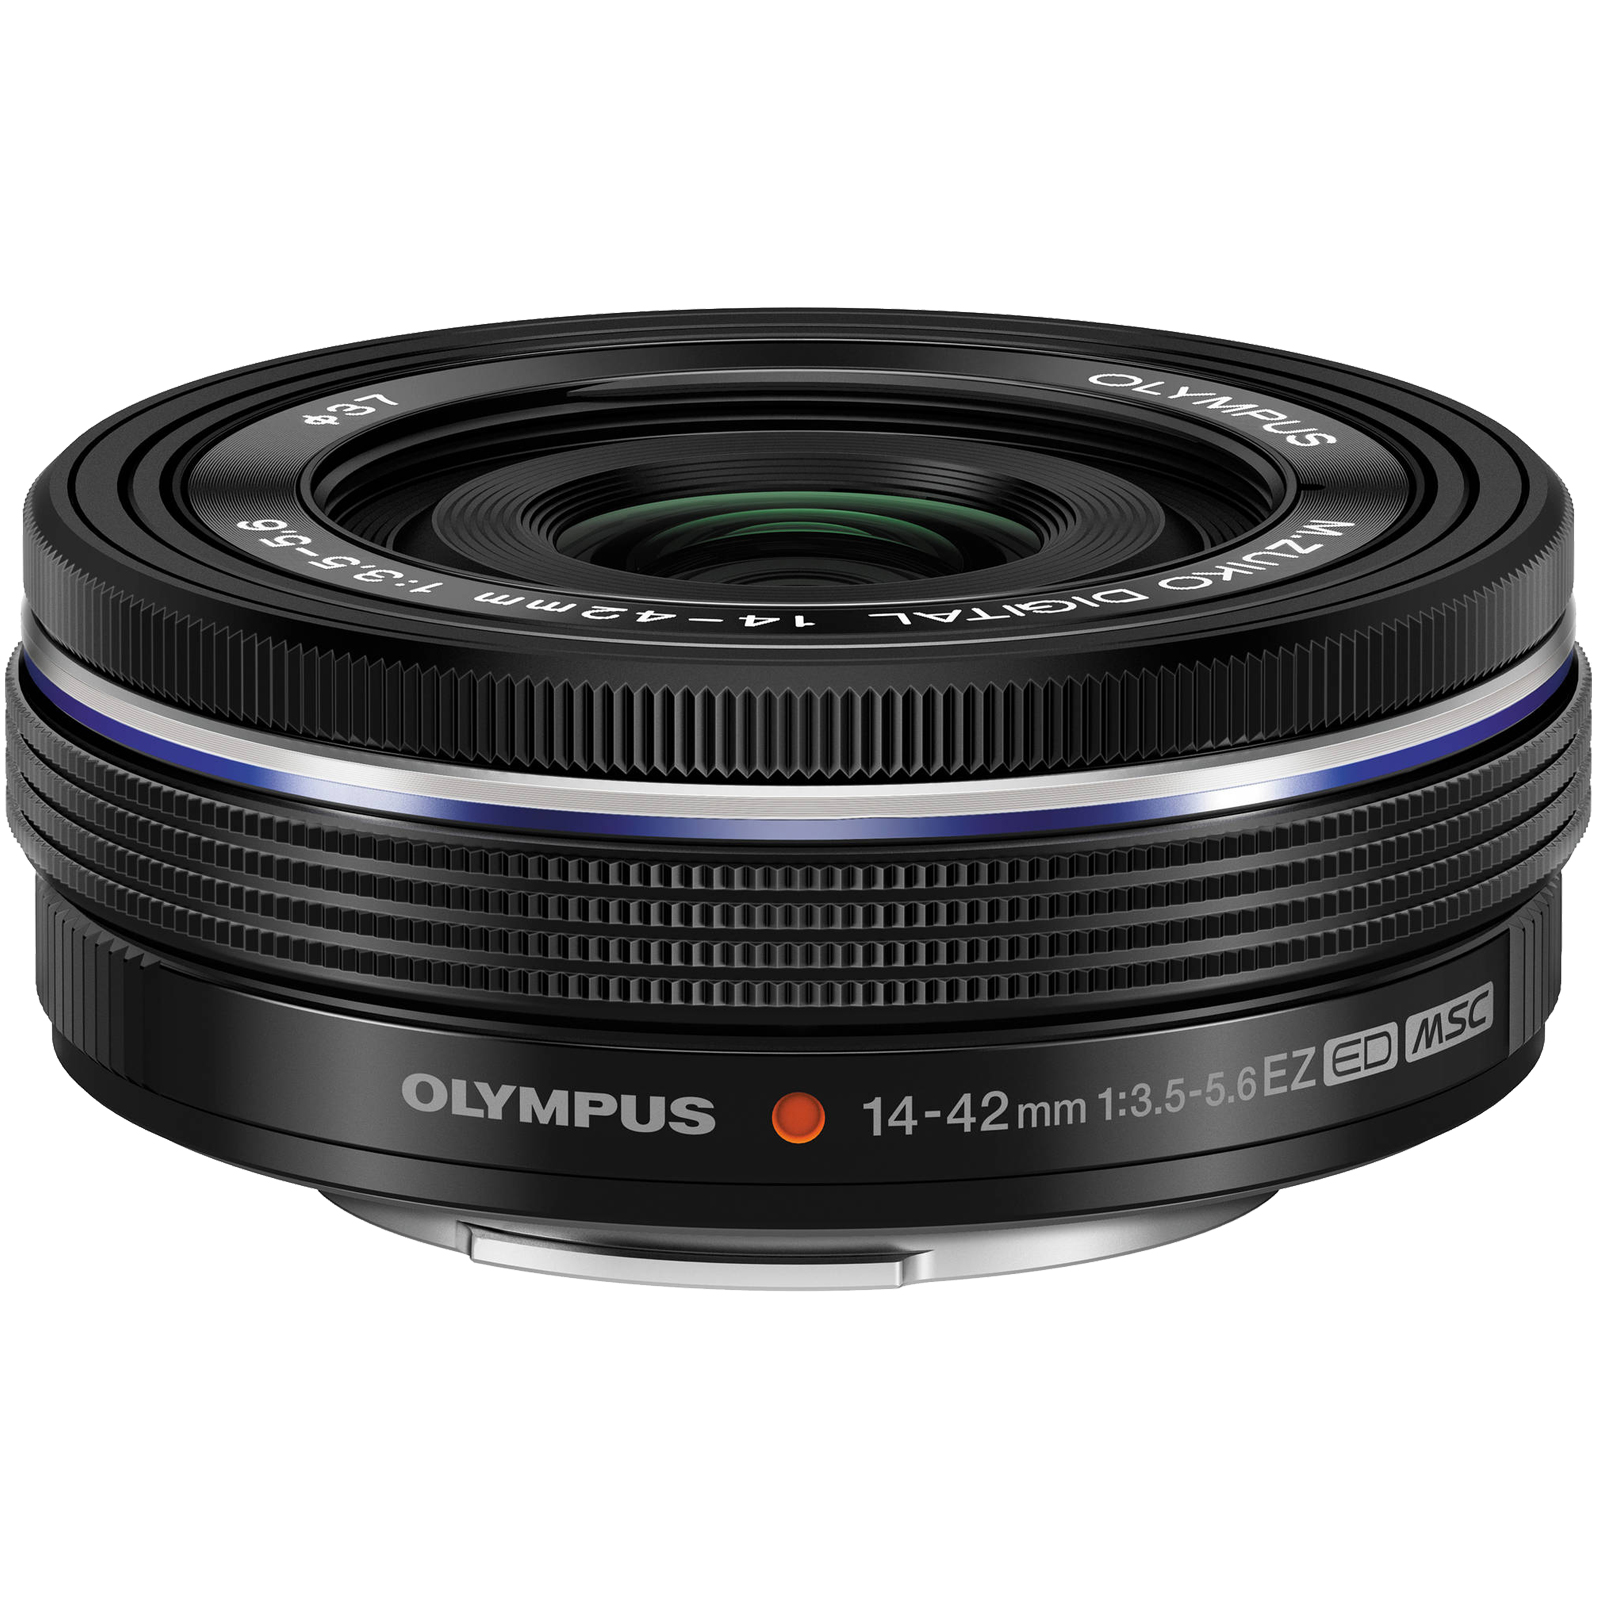 Olympus M.Zuiko 14-42mm f/3.5-5.6 EZ Digital Zoom Lens (Black)